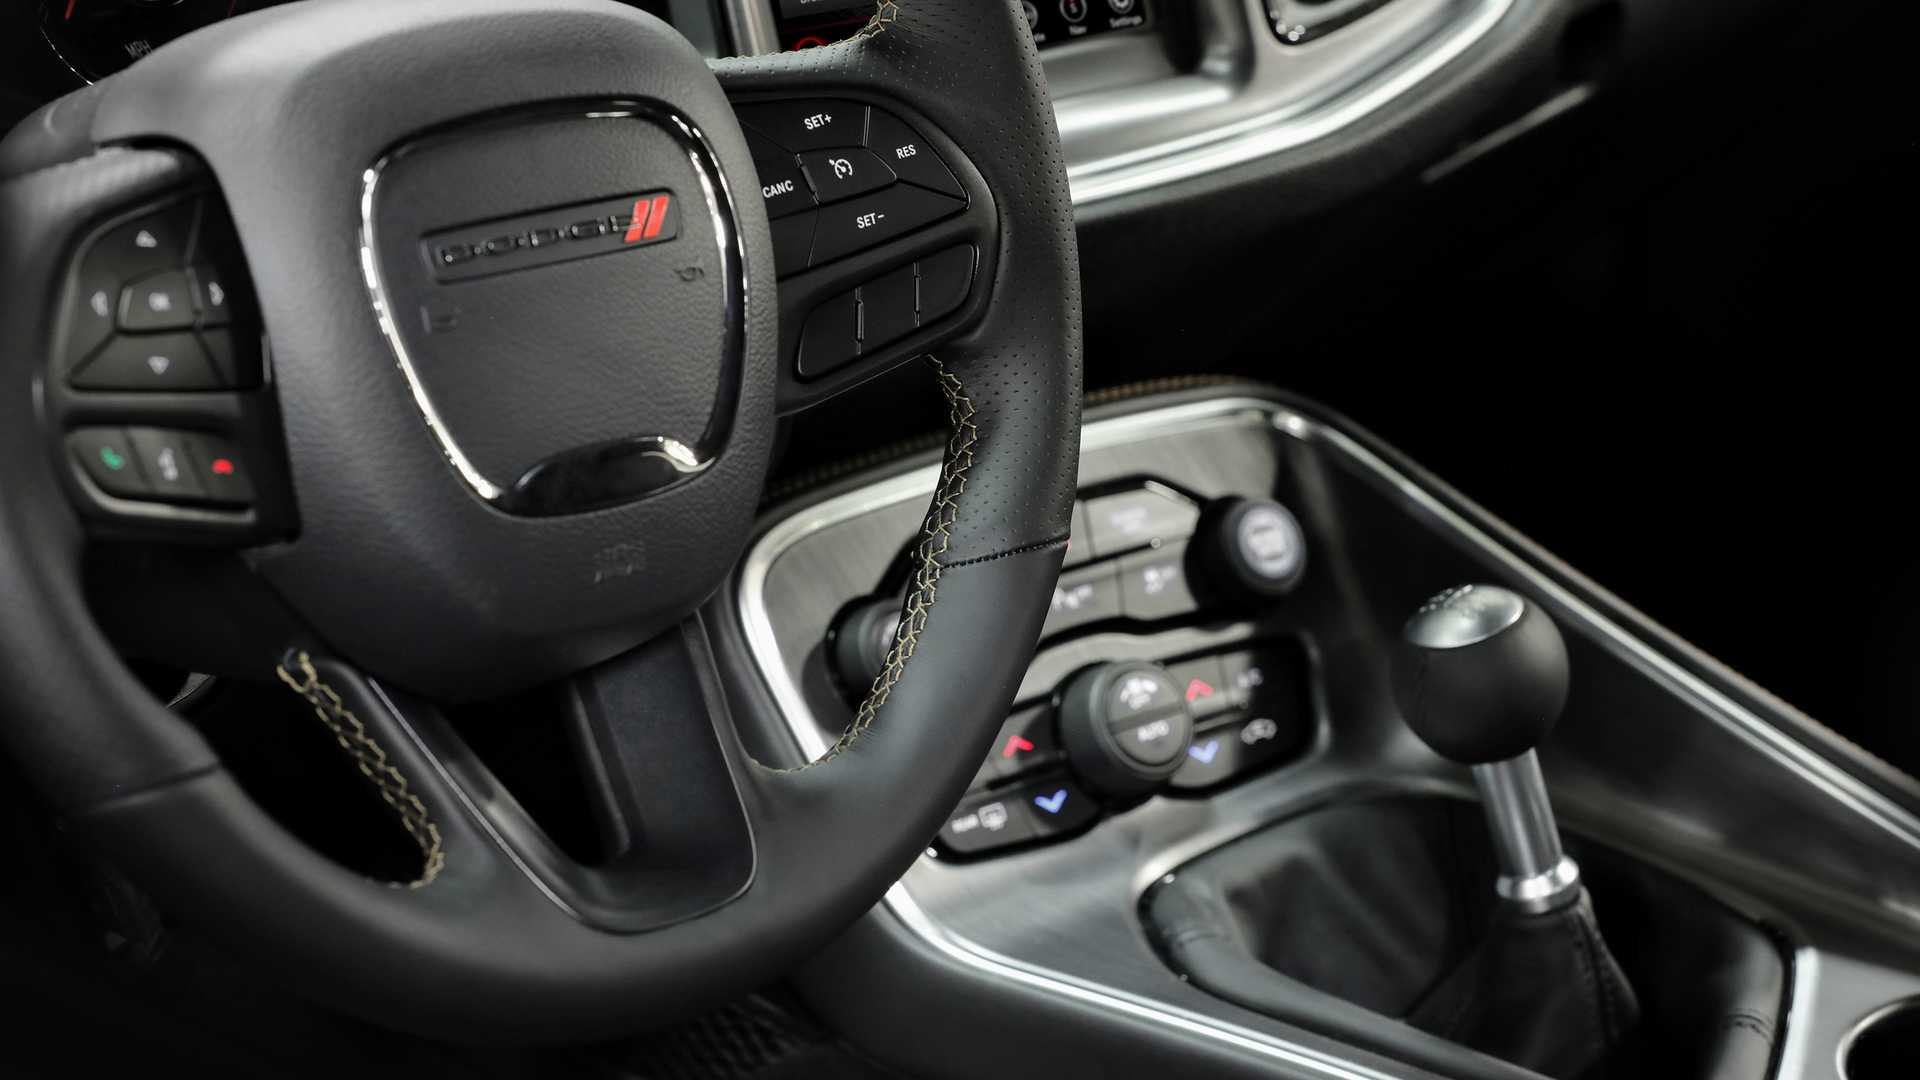 2019 Dodge Challenger RT Stars & Stripes Edition Interior Steering Wheel Wallpapers #8 of 11